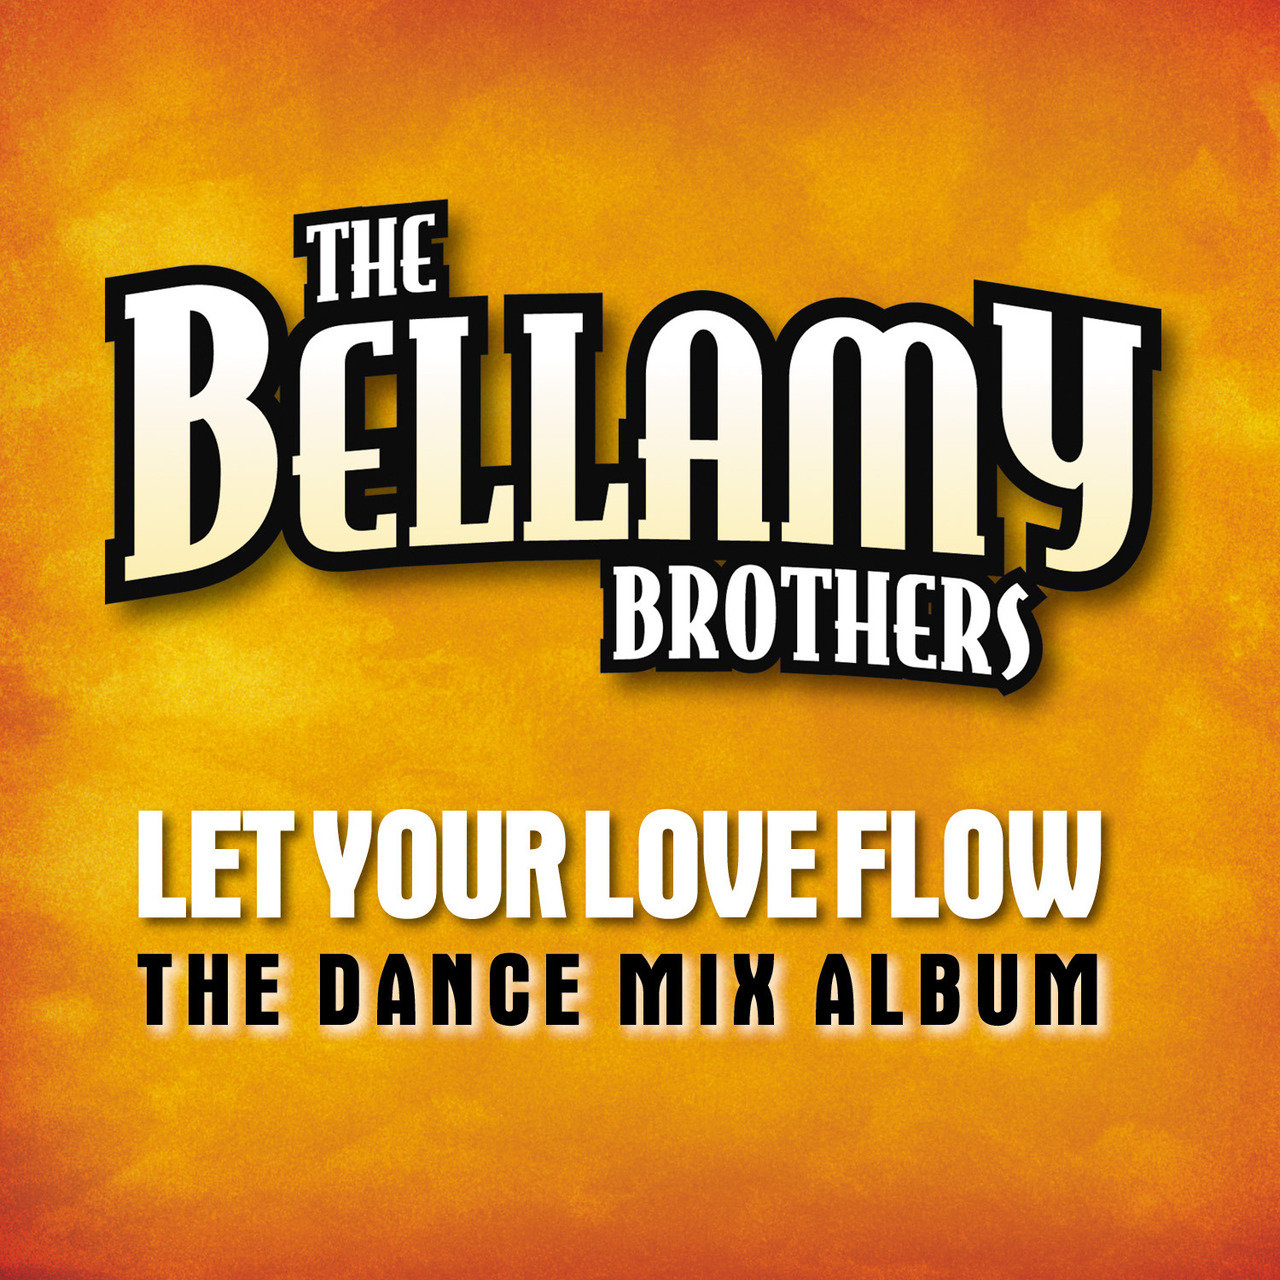 Let Your Love Flow (The Dance Mix Album)